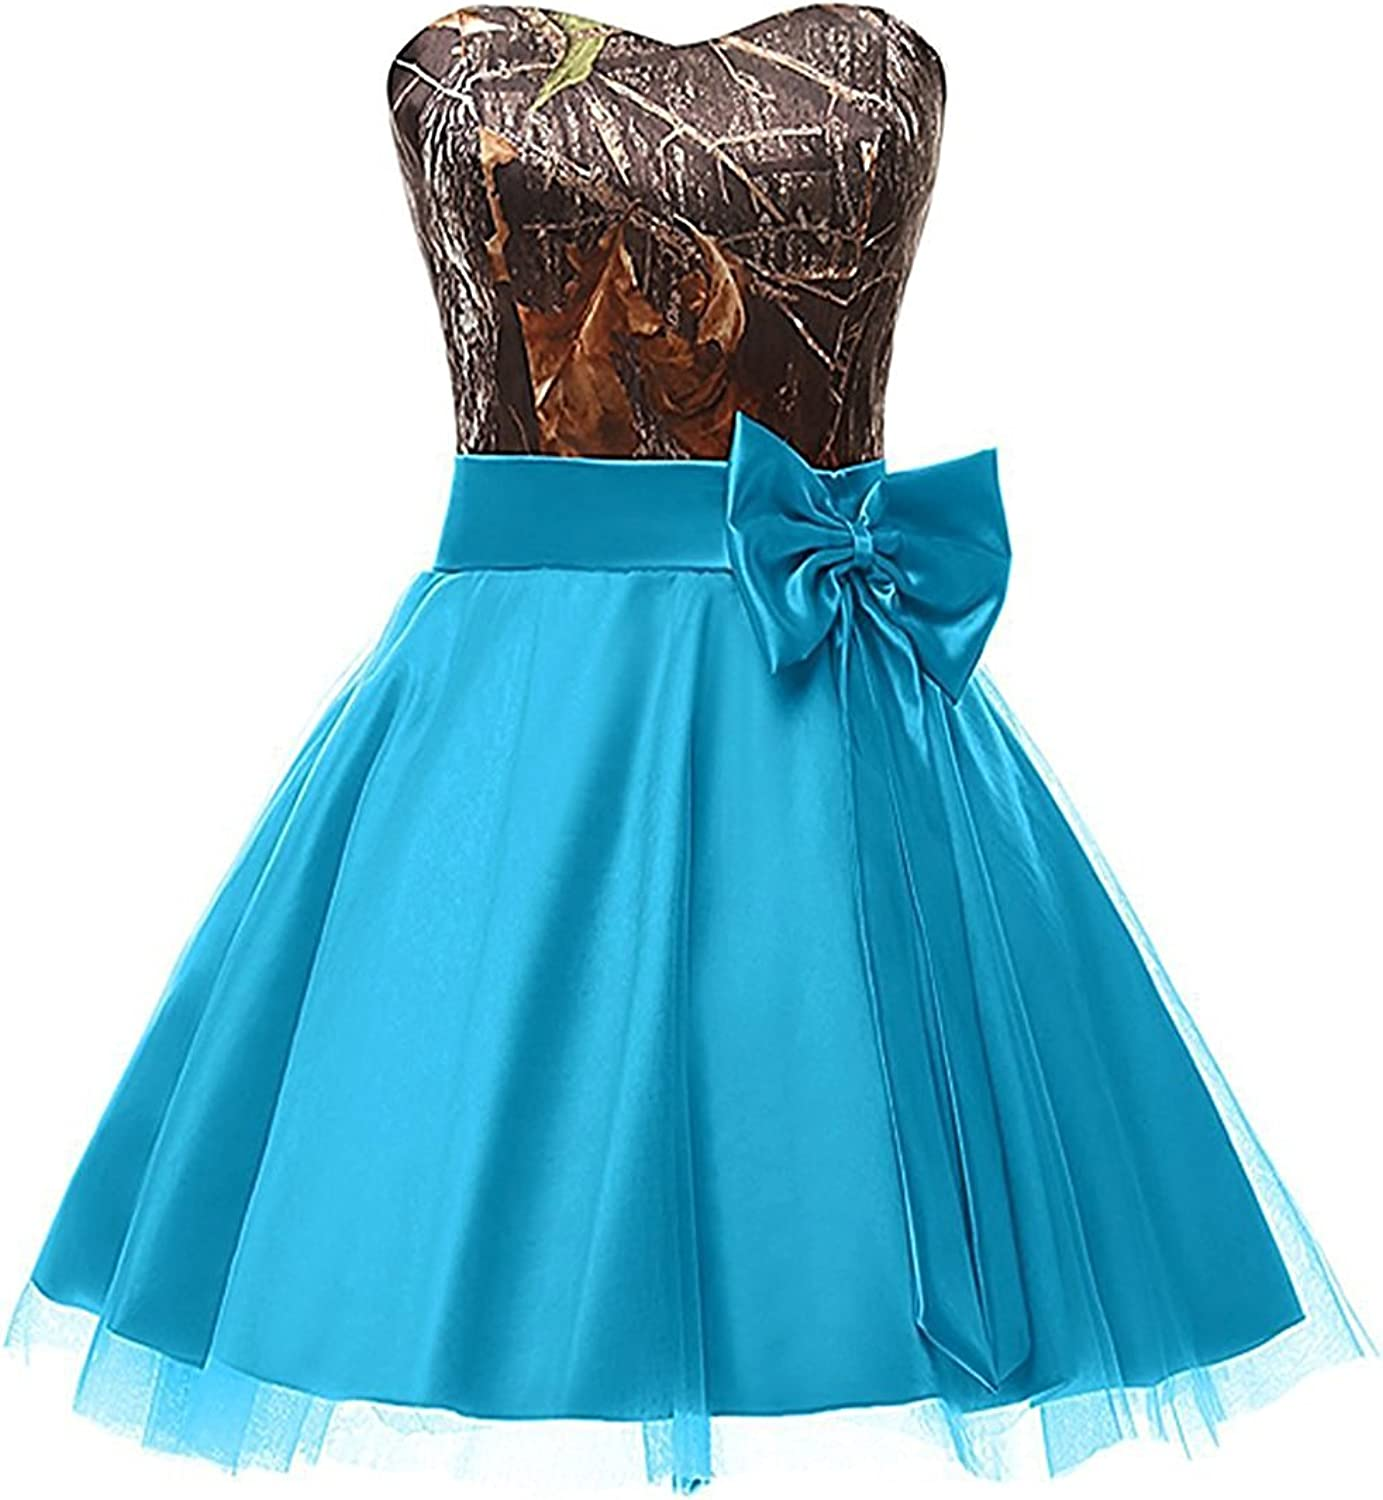 QY Bride Prom Homecoming Dresses Camo Wedding Party Bridesmaid Gowns